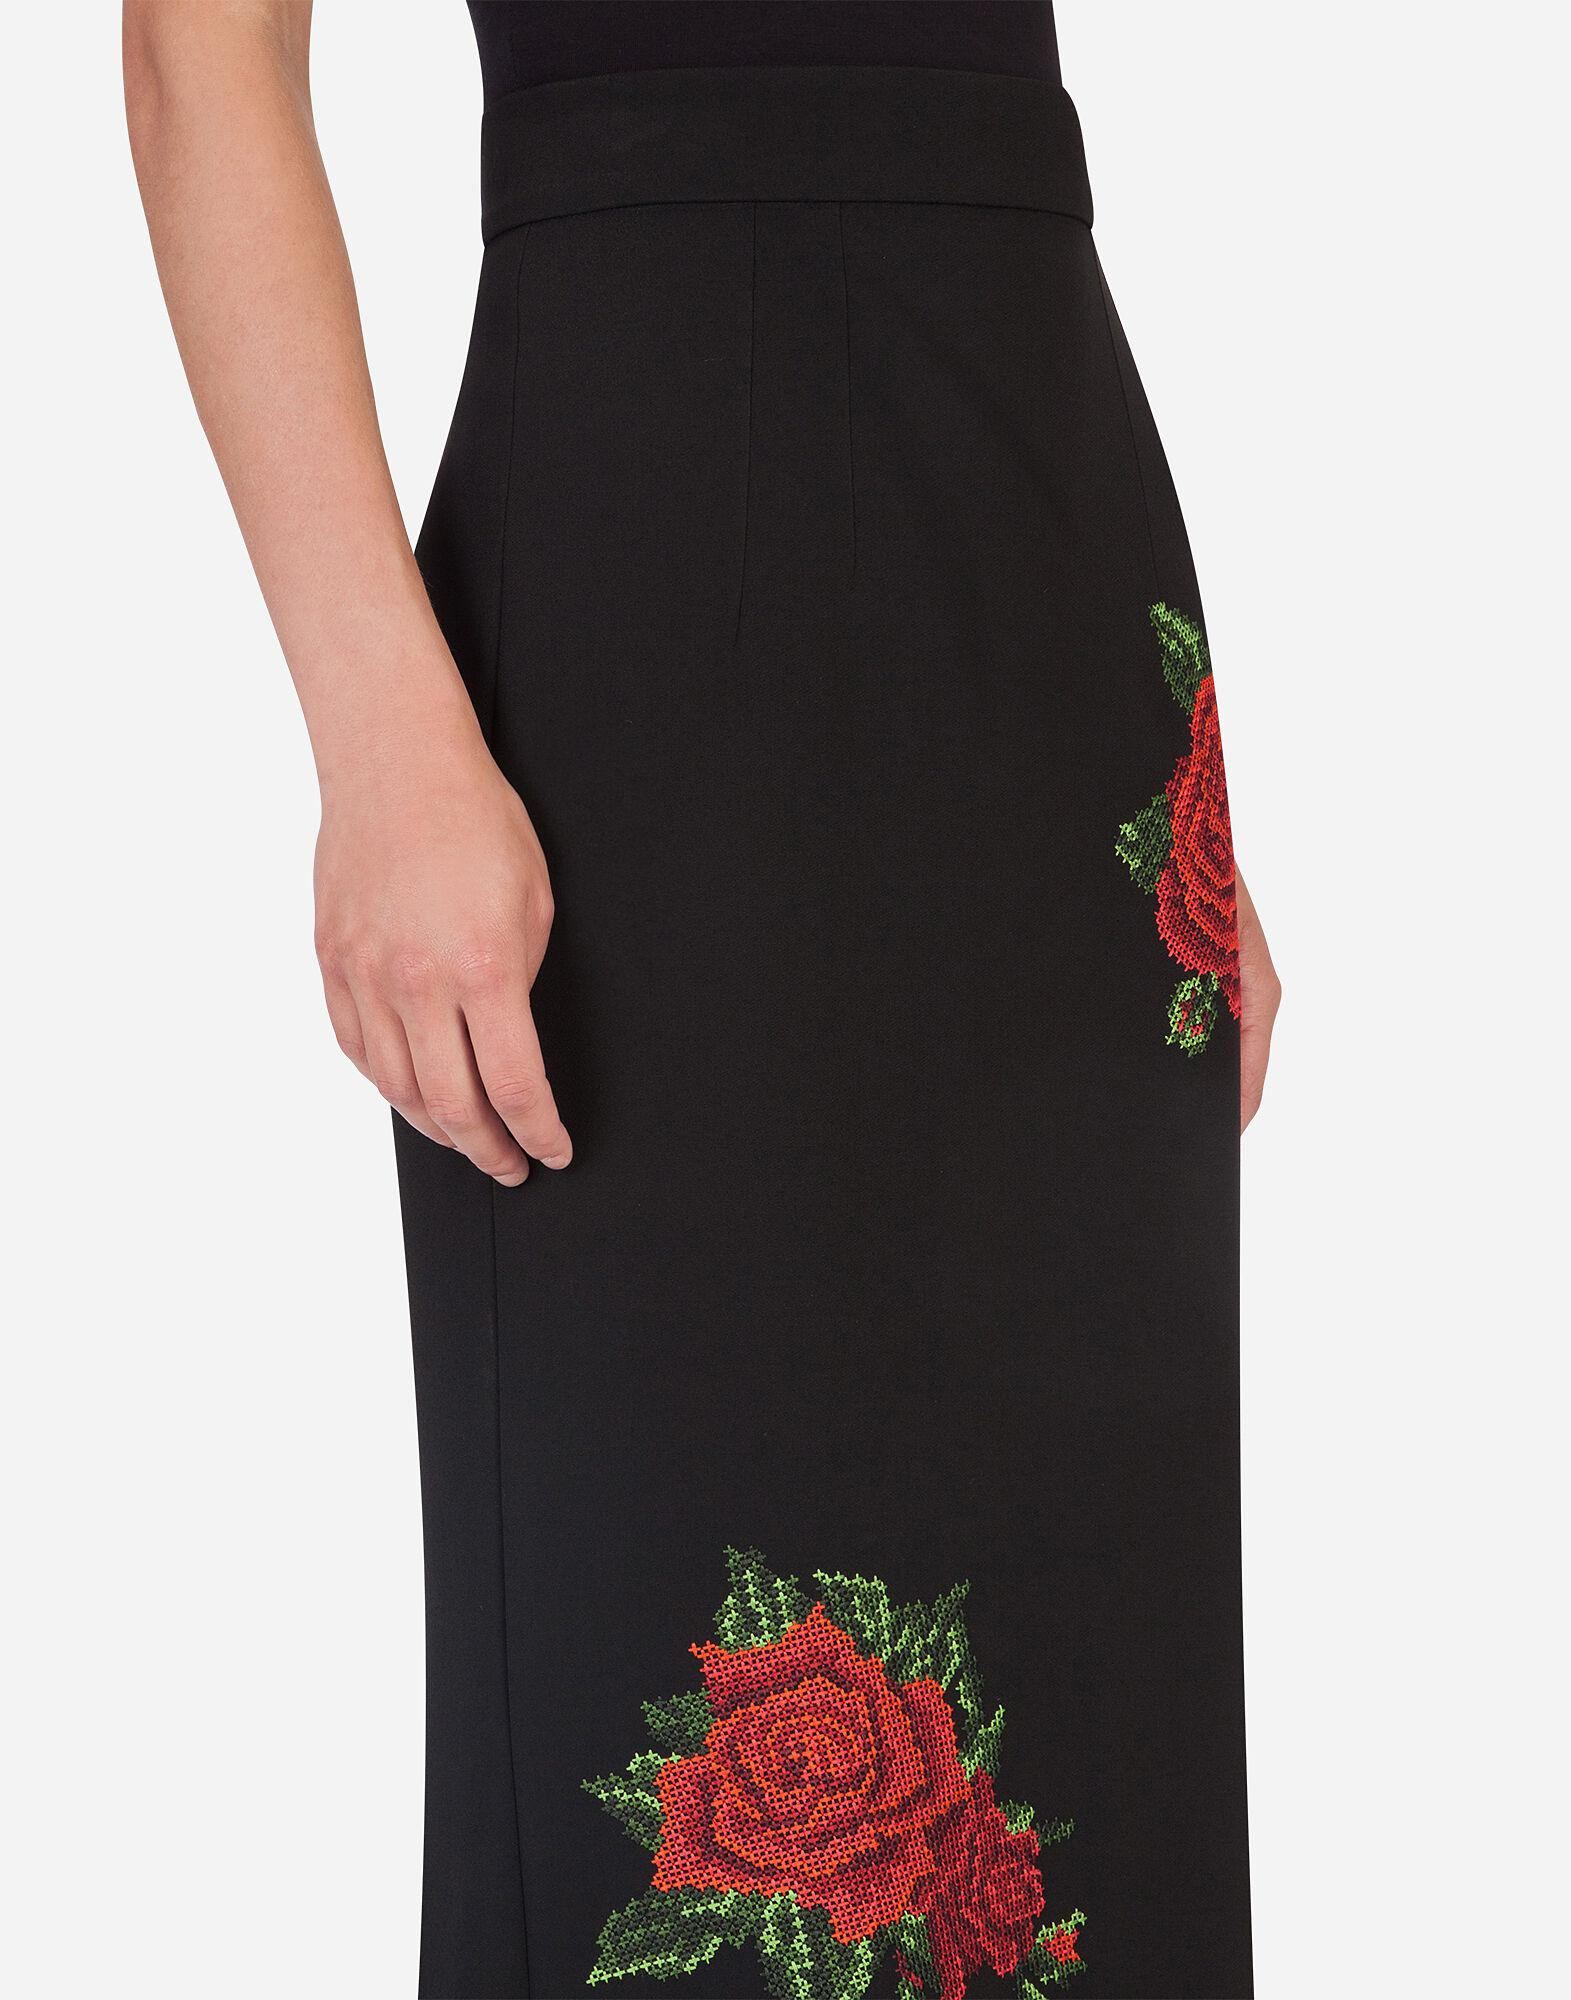 Pencil skirt with rose embroidery 5